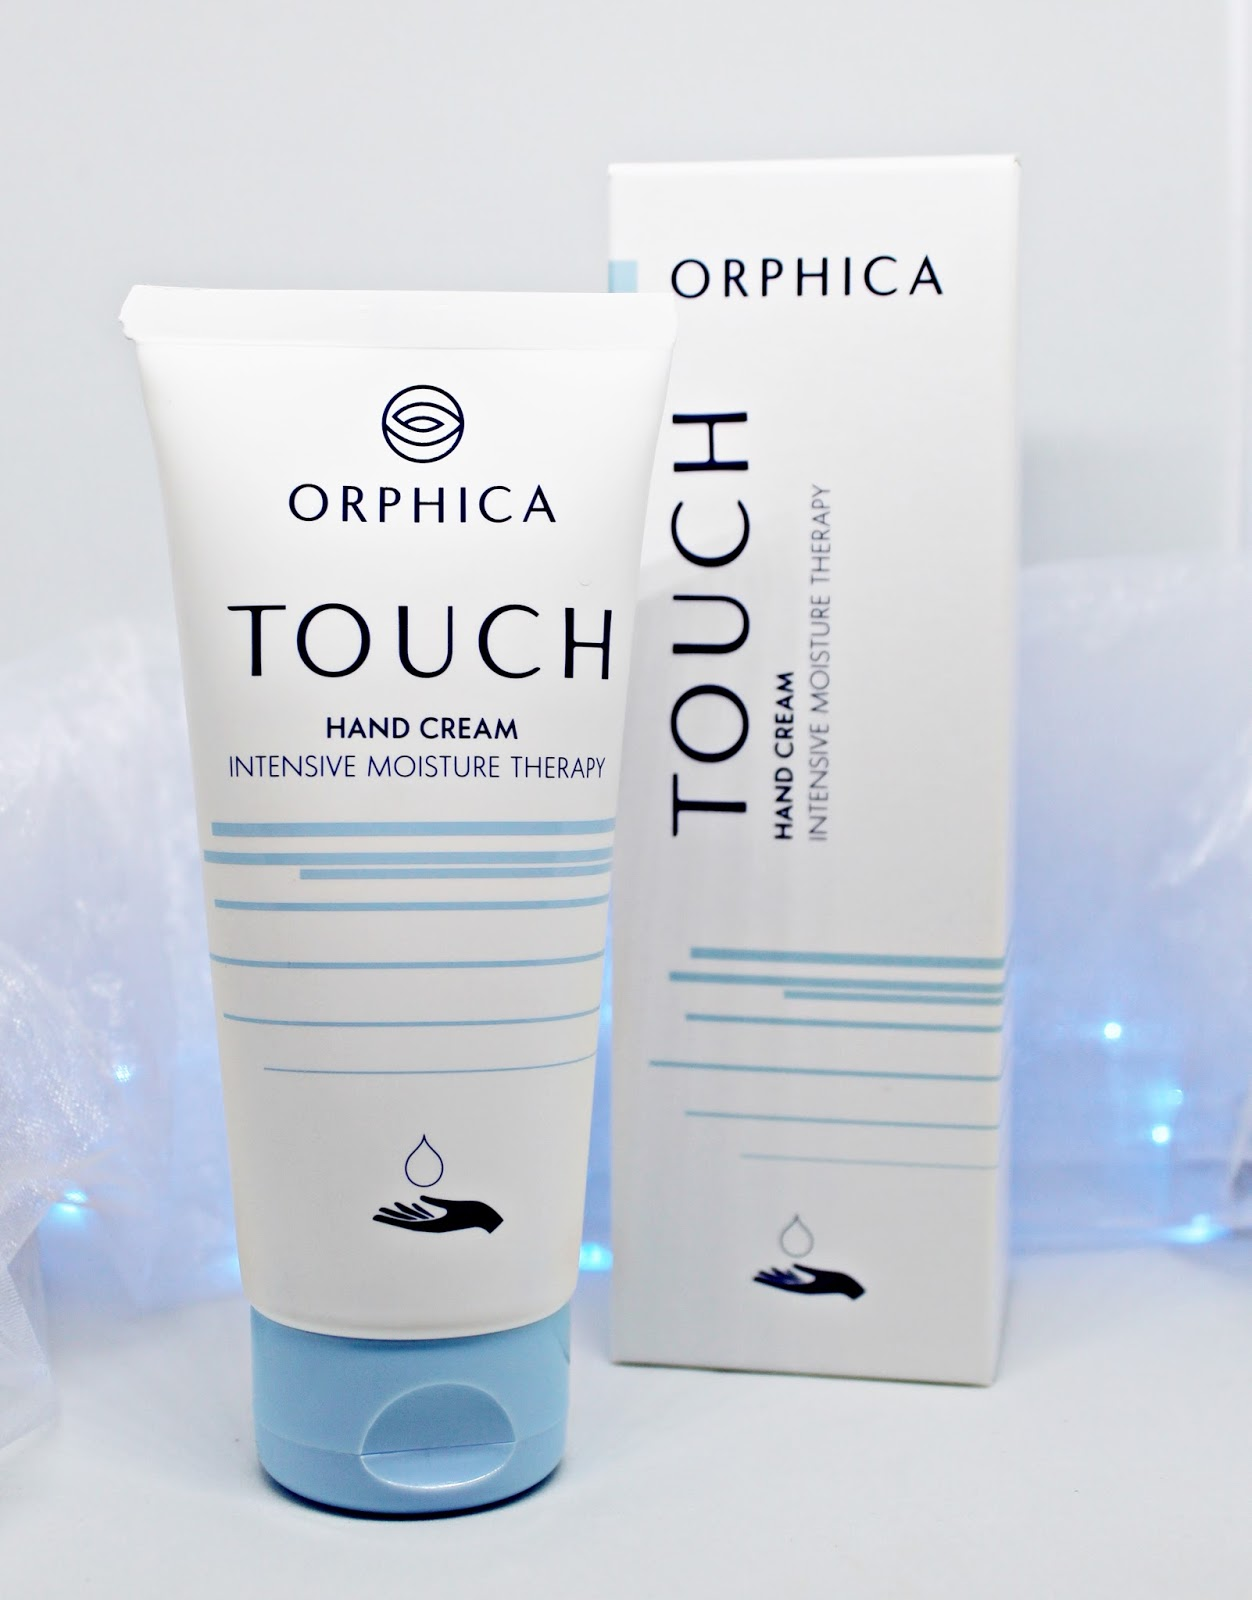 ORPHICA - TOUCH Hand cream - mój ABSOLUTNY HIT!